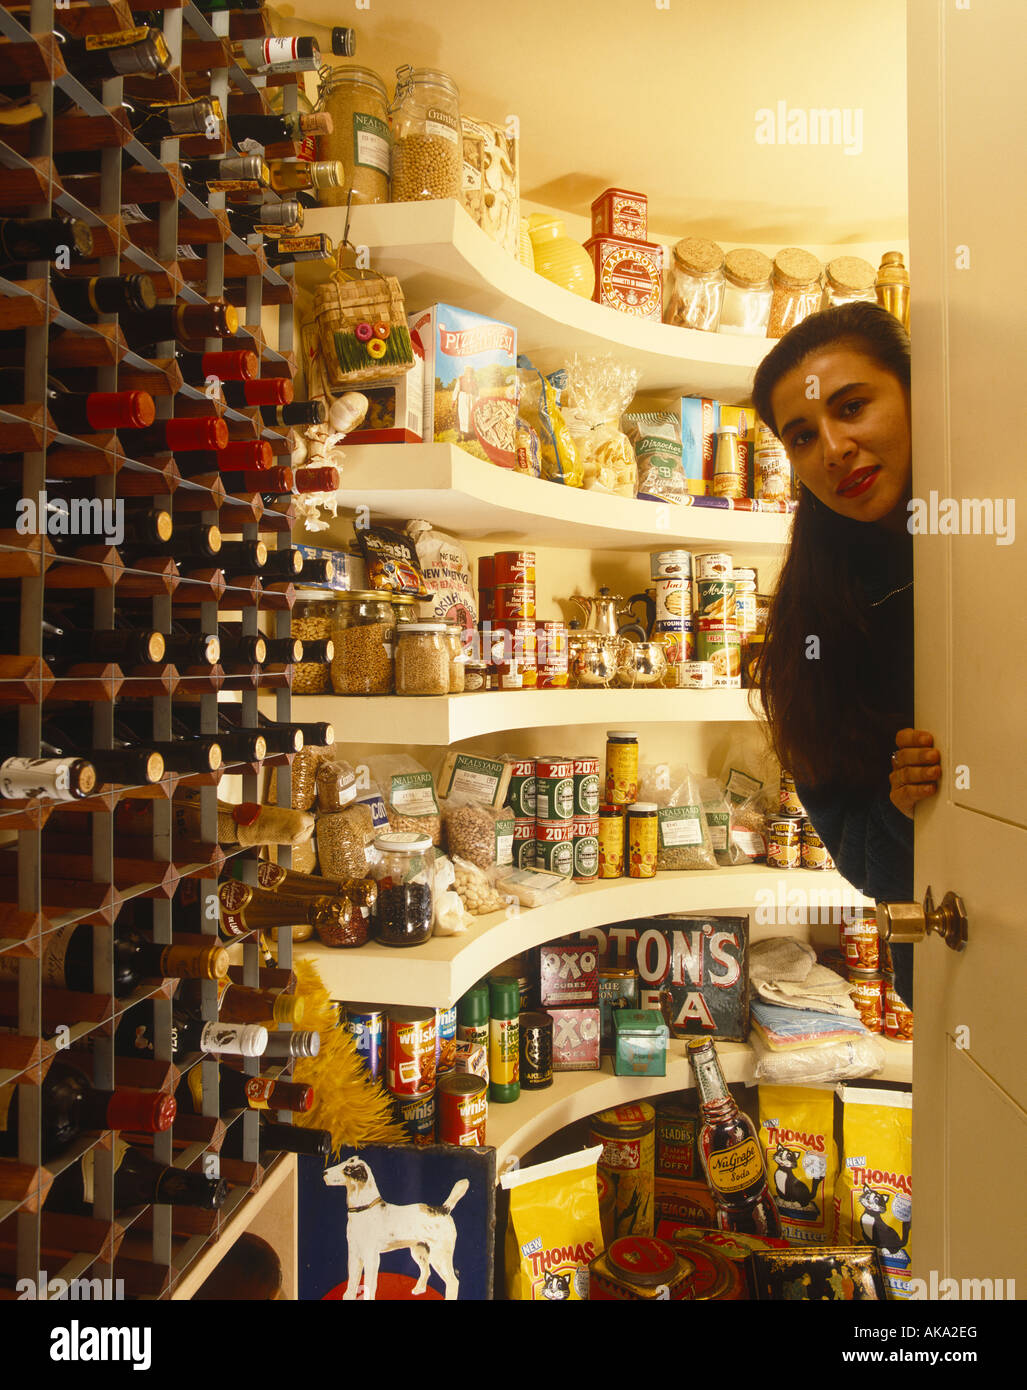 Larder/Cellar with Owner - Stock Image